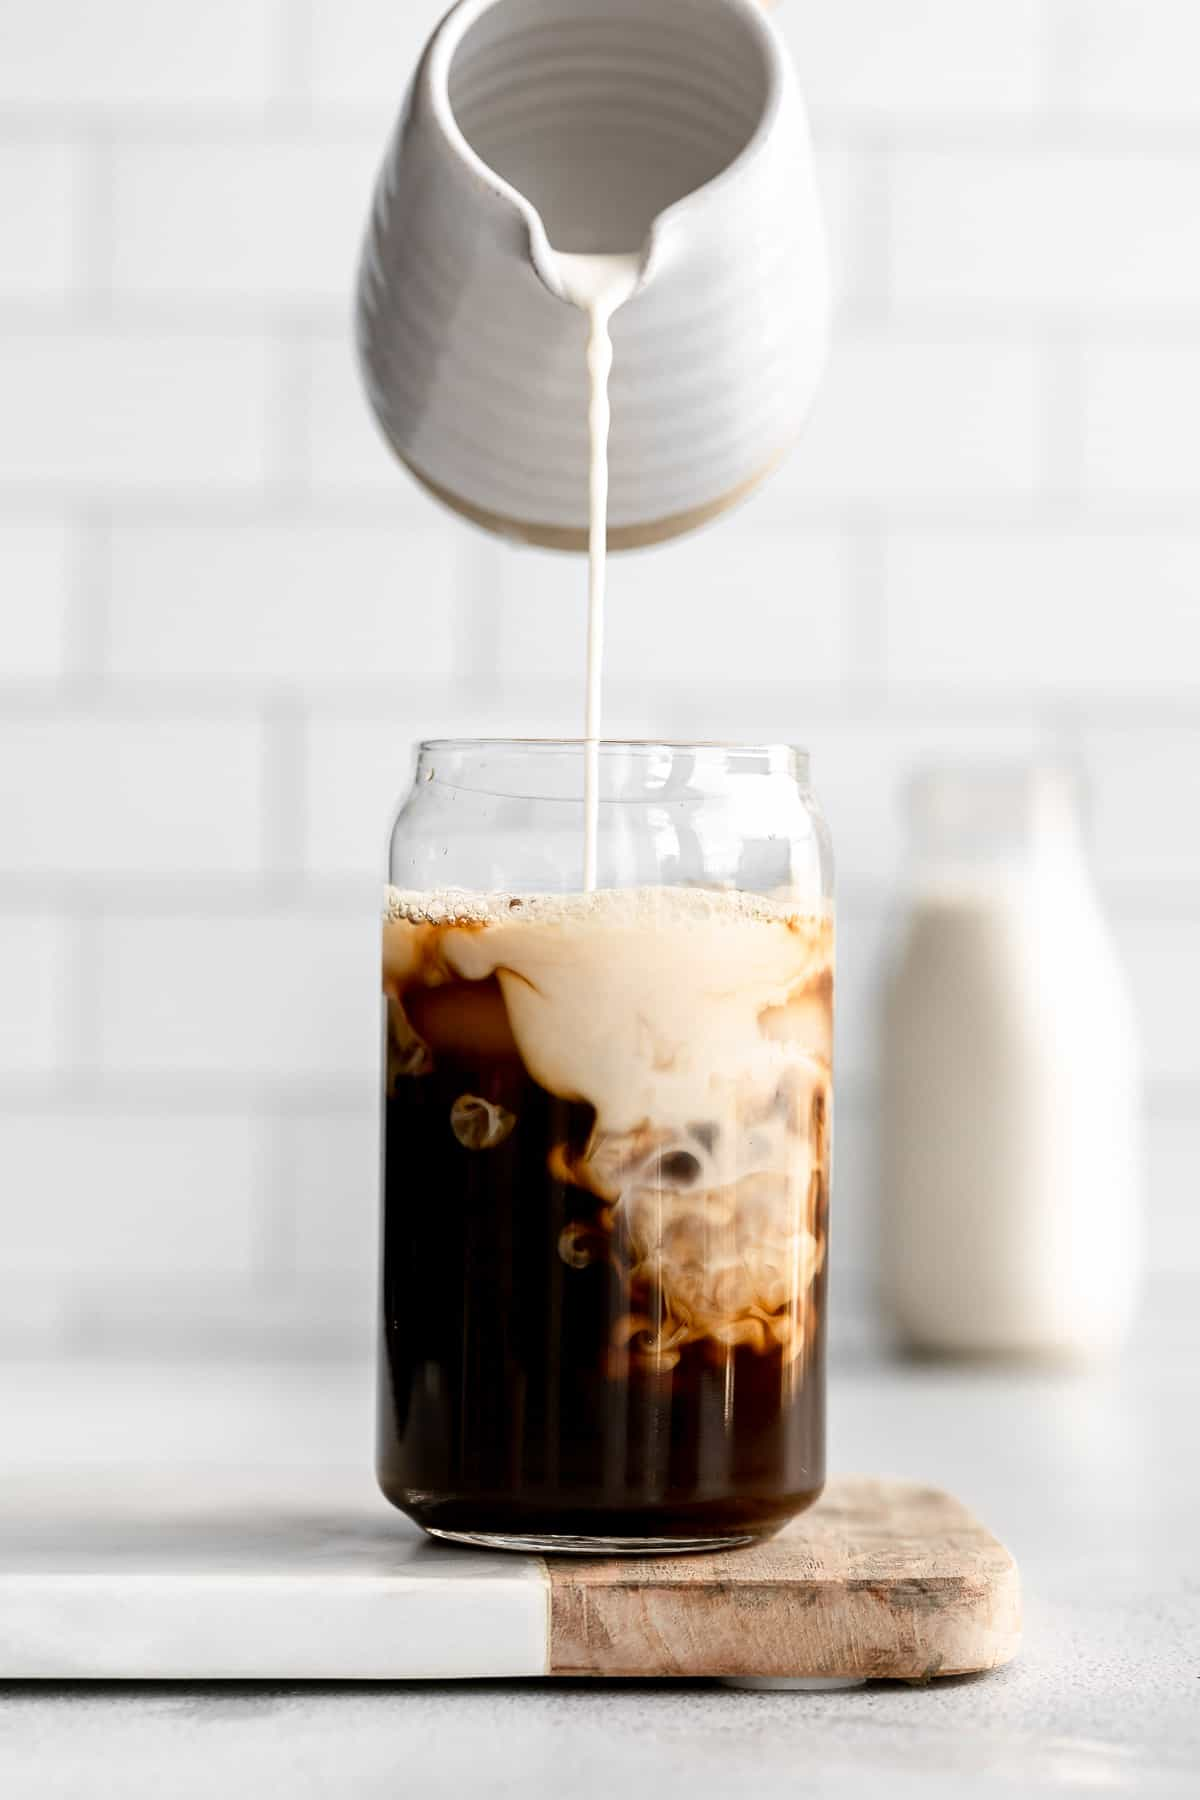 pouring the homemade walnut milk in a cup of iced coffee